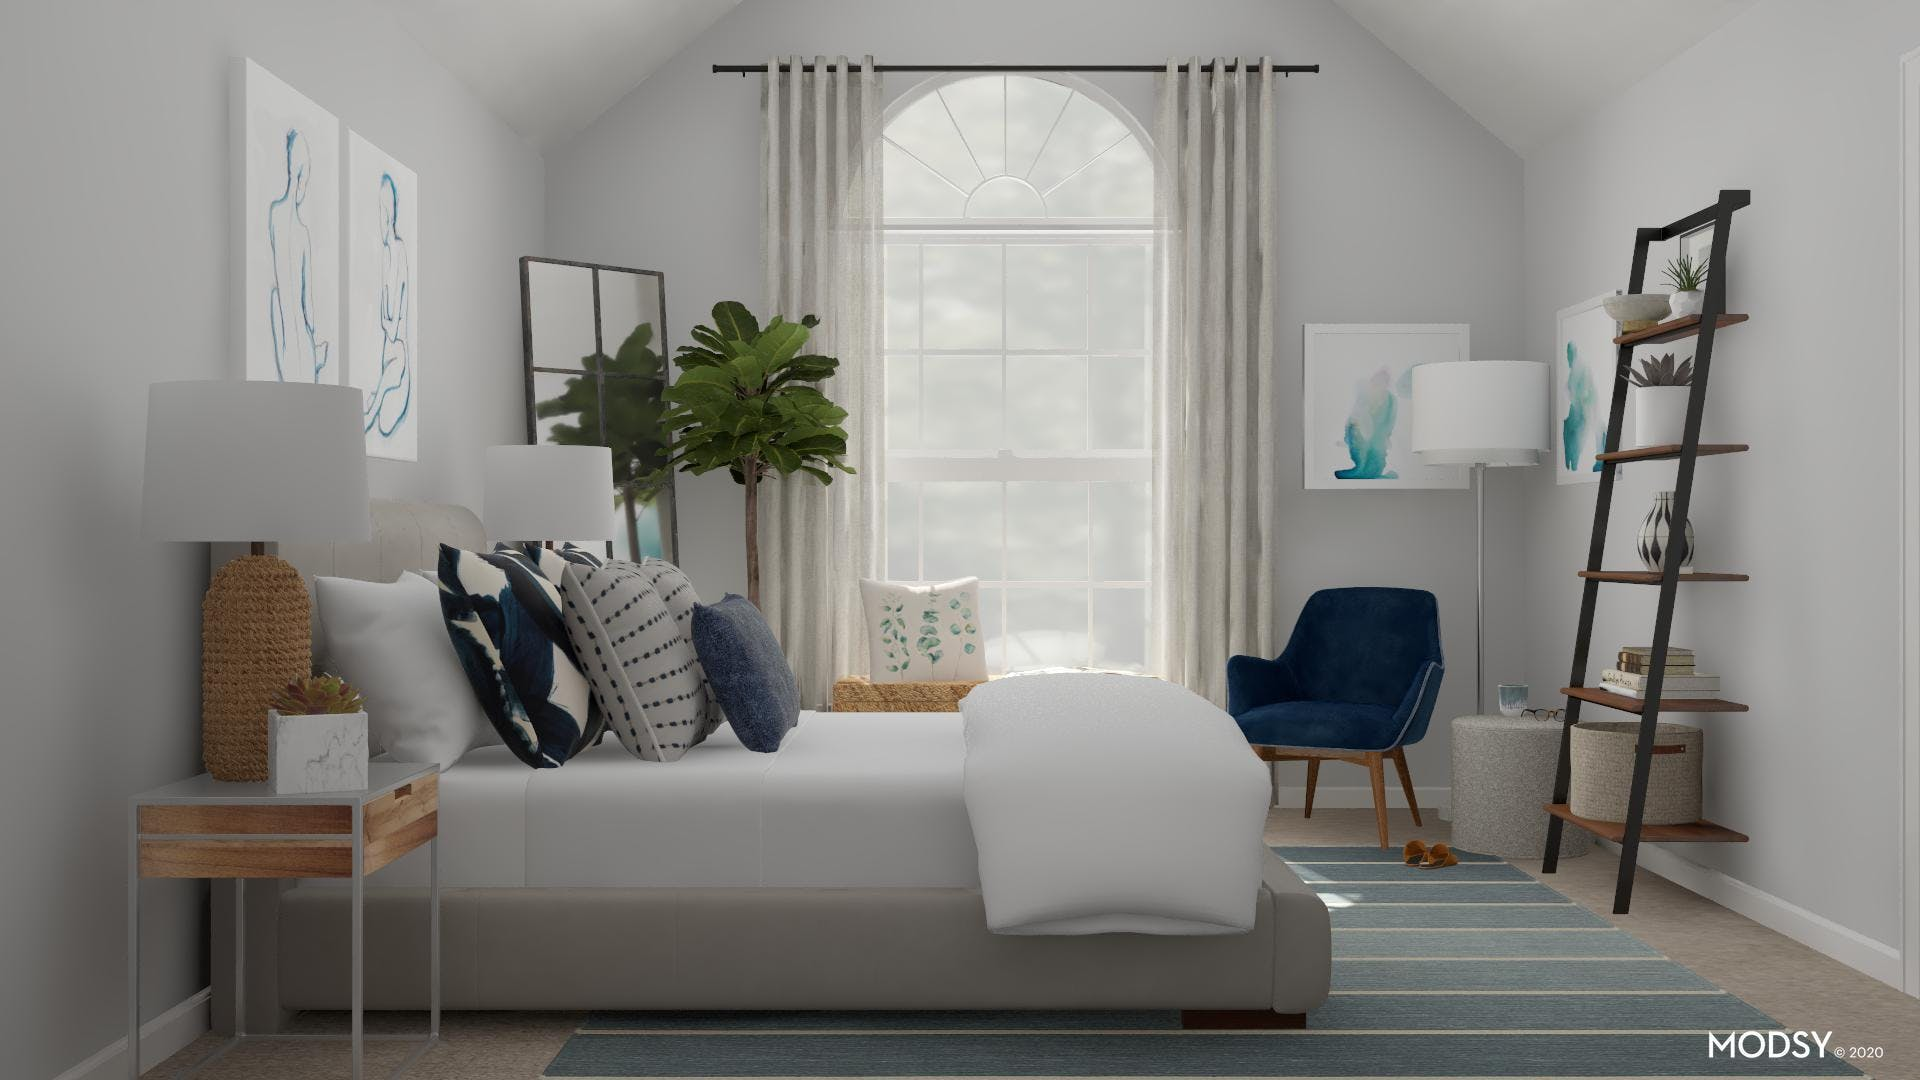 Lofty Master Bedroom with Natural Light